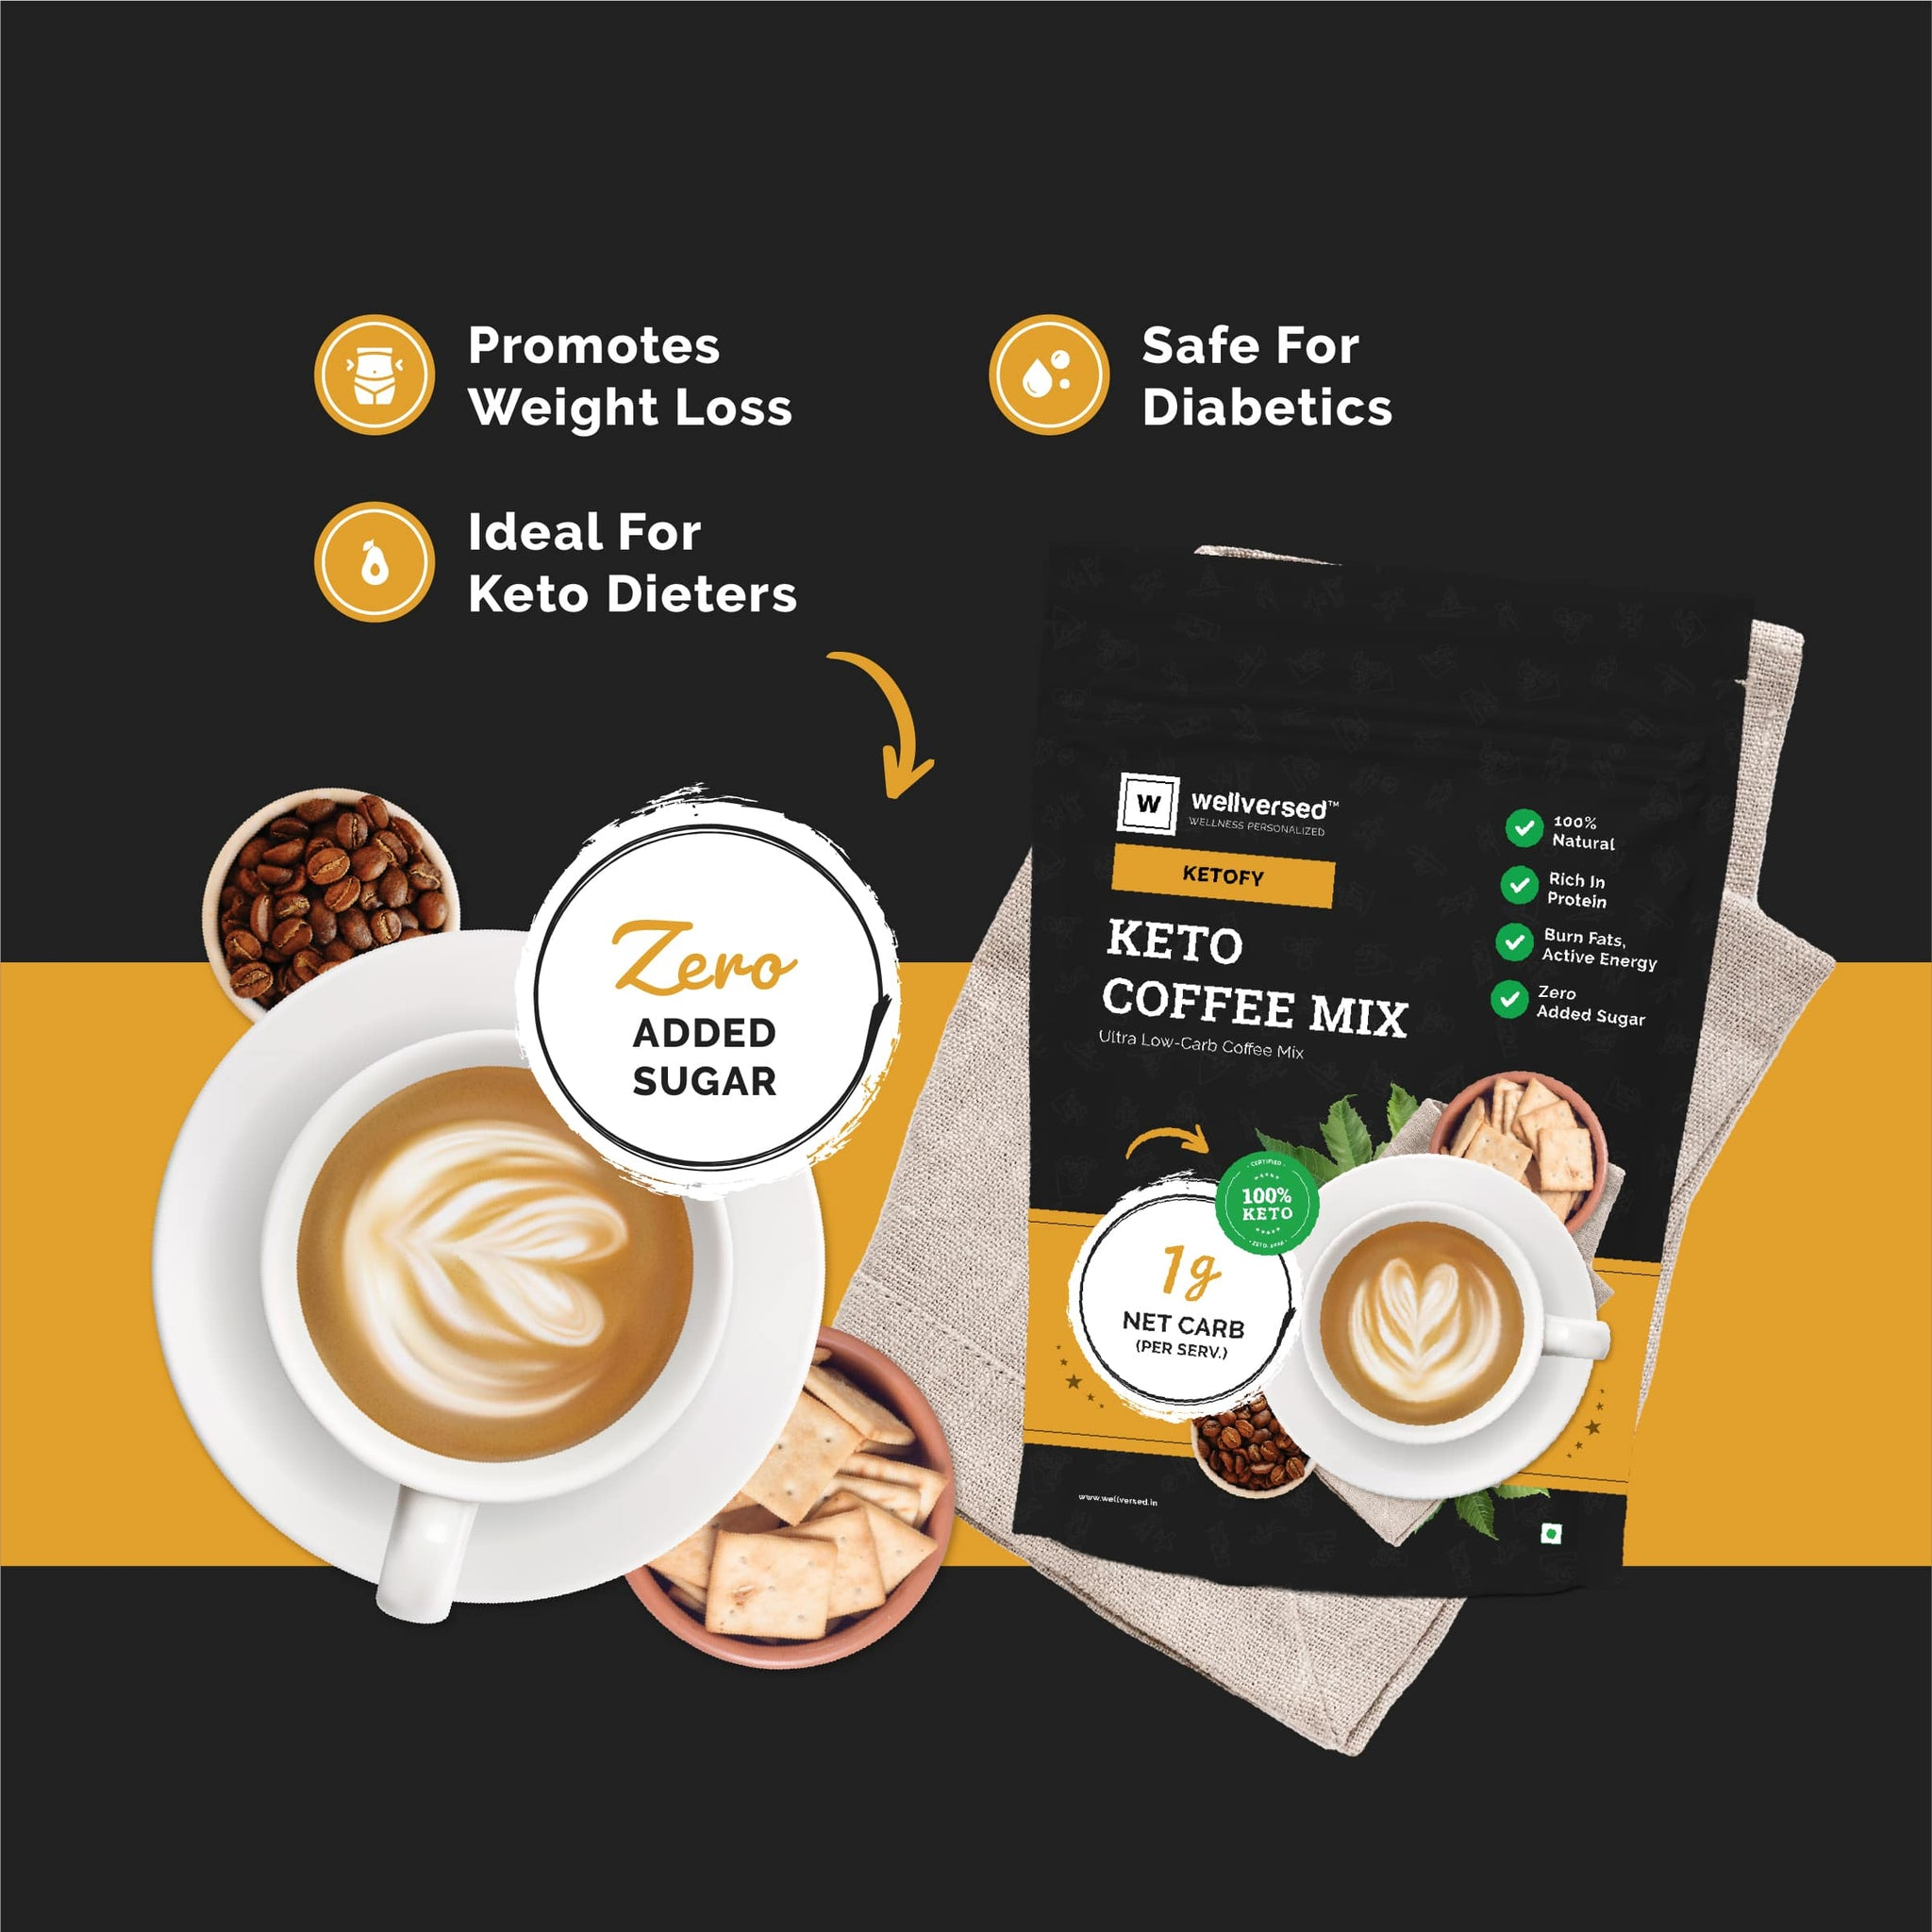 Ketofy Coffee Mix